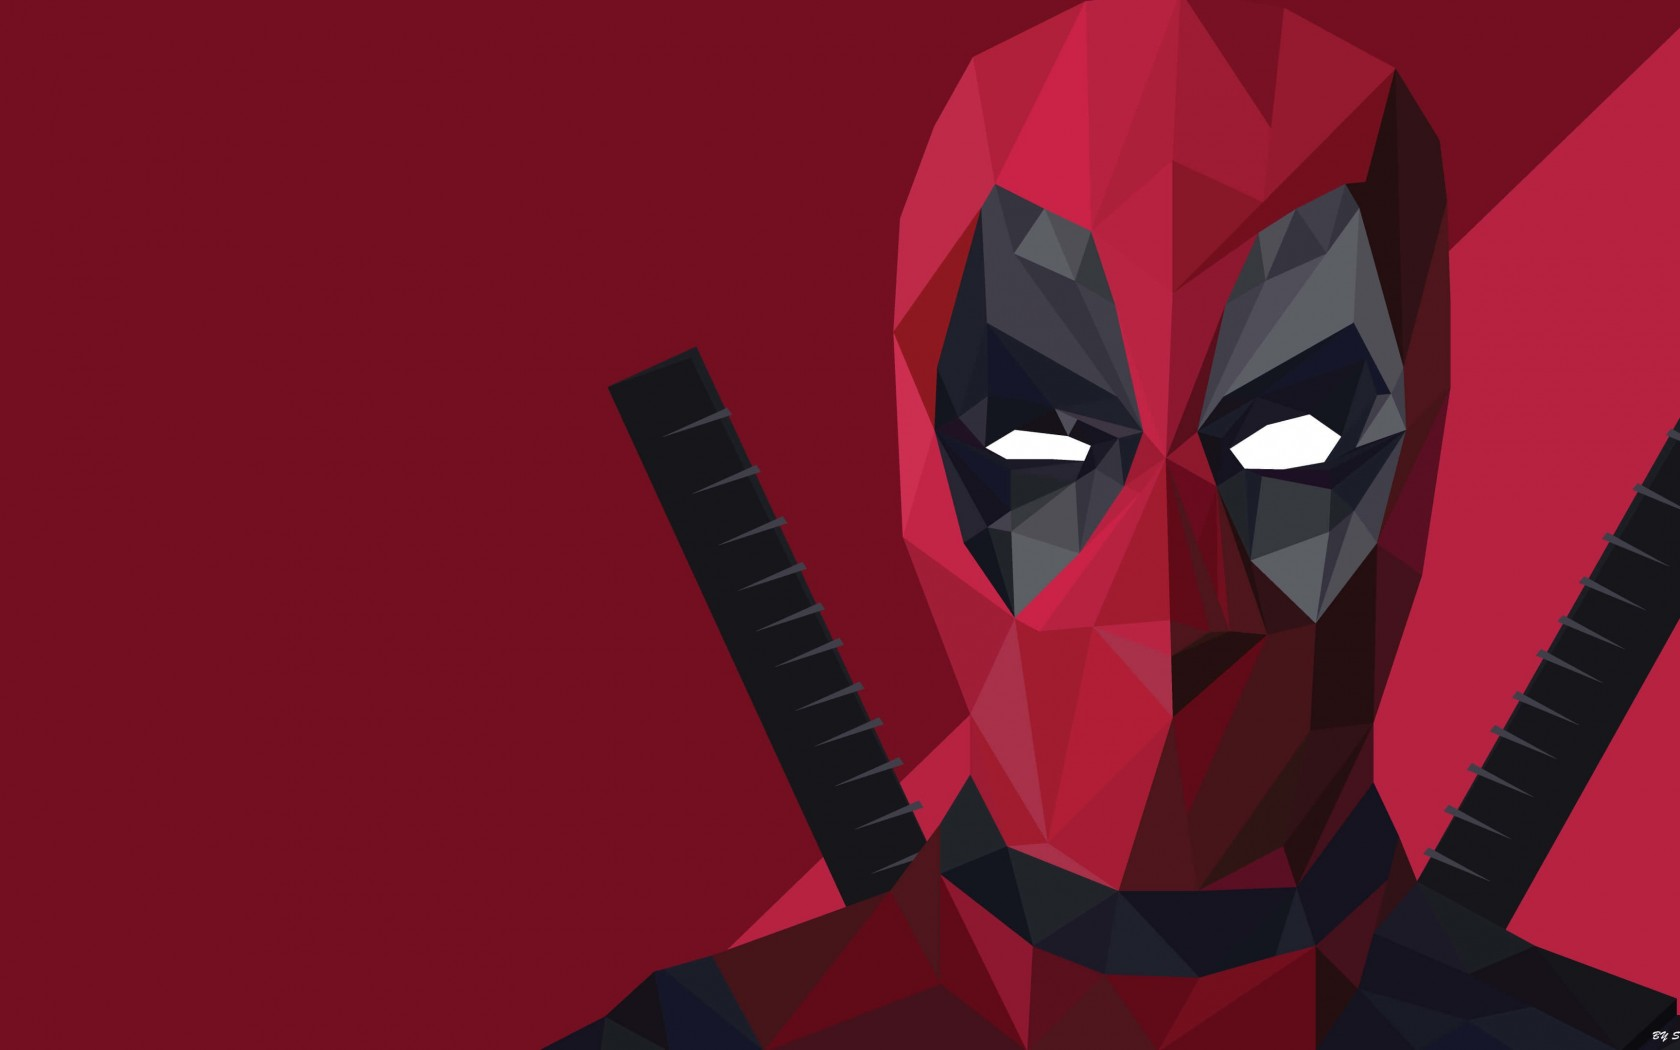 Low Poly Deadpool Wallpaper for Desktop 1680x1050